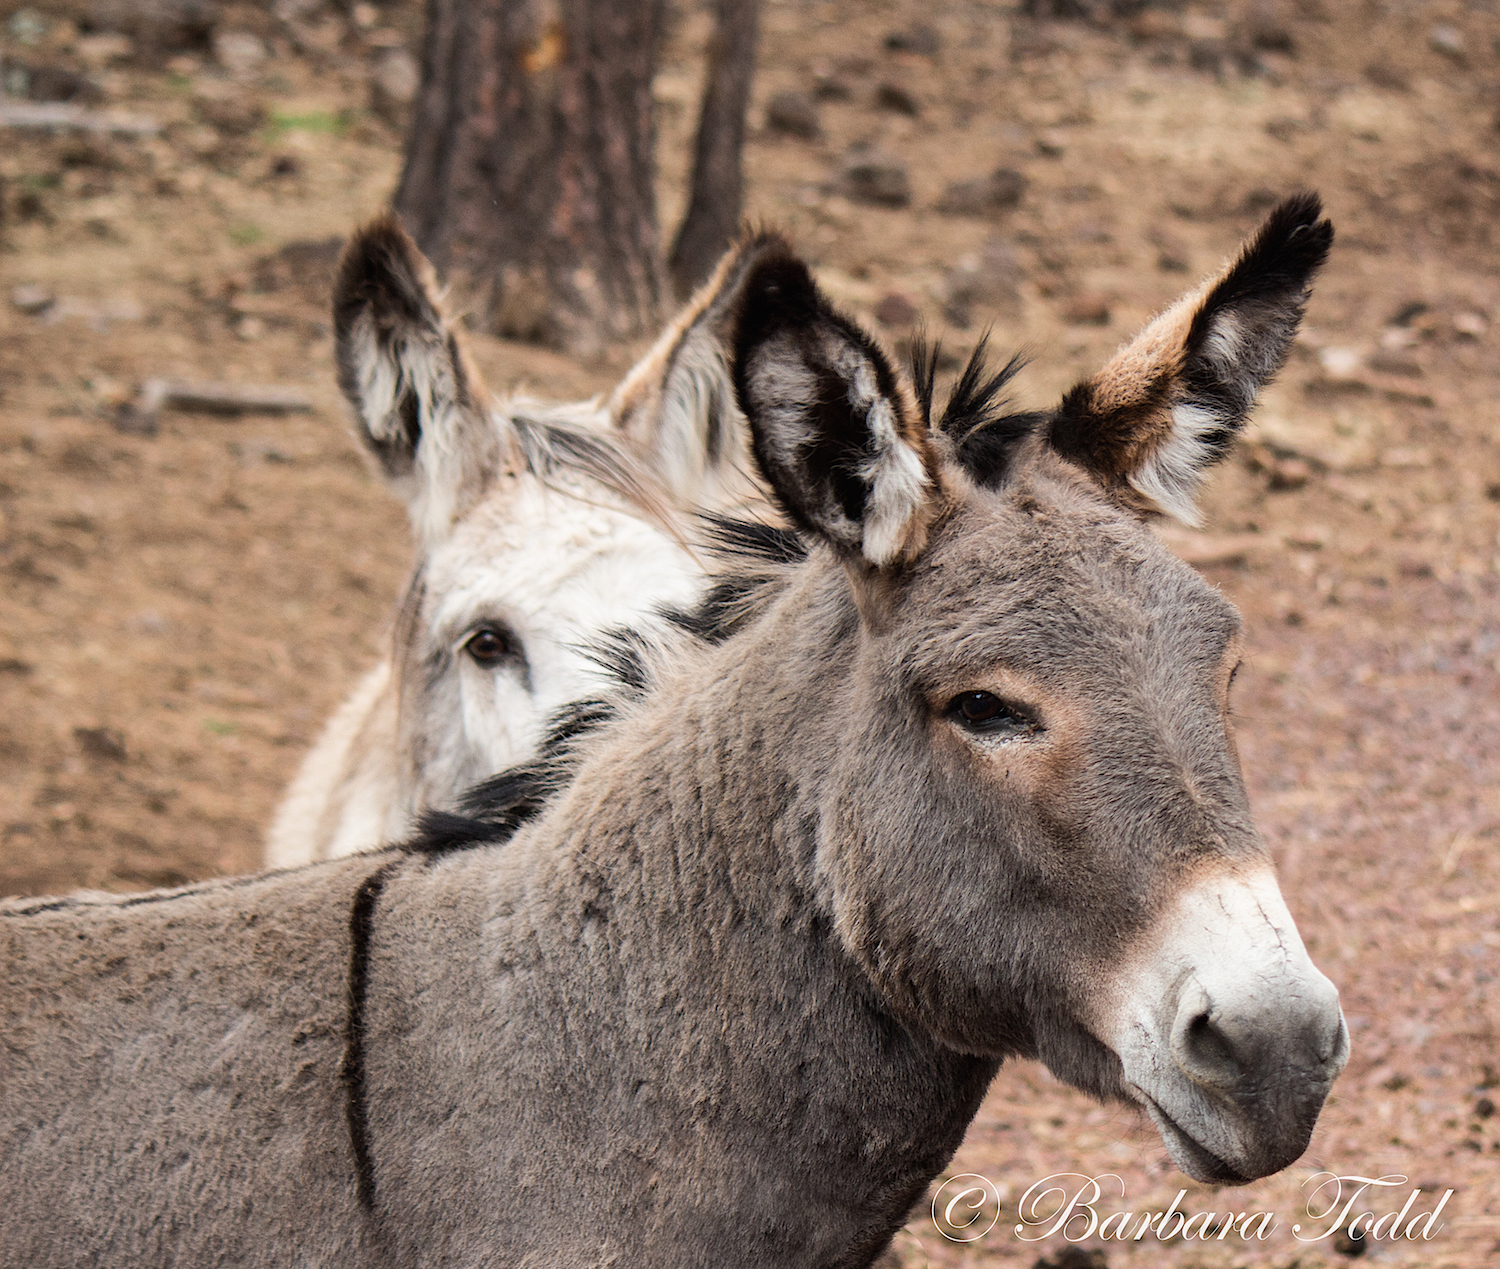 The bus driver explained that donkeys have a stripe across their shoulders as a sign of blessing because they carried Virgin Mary when other animals refused.